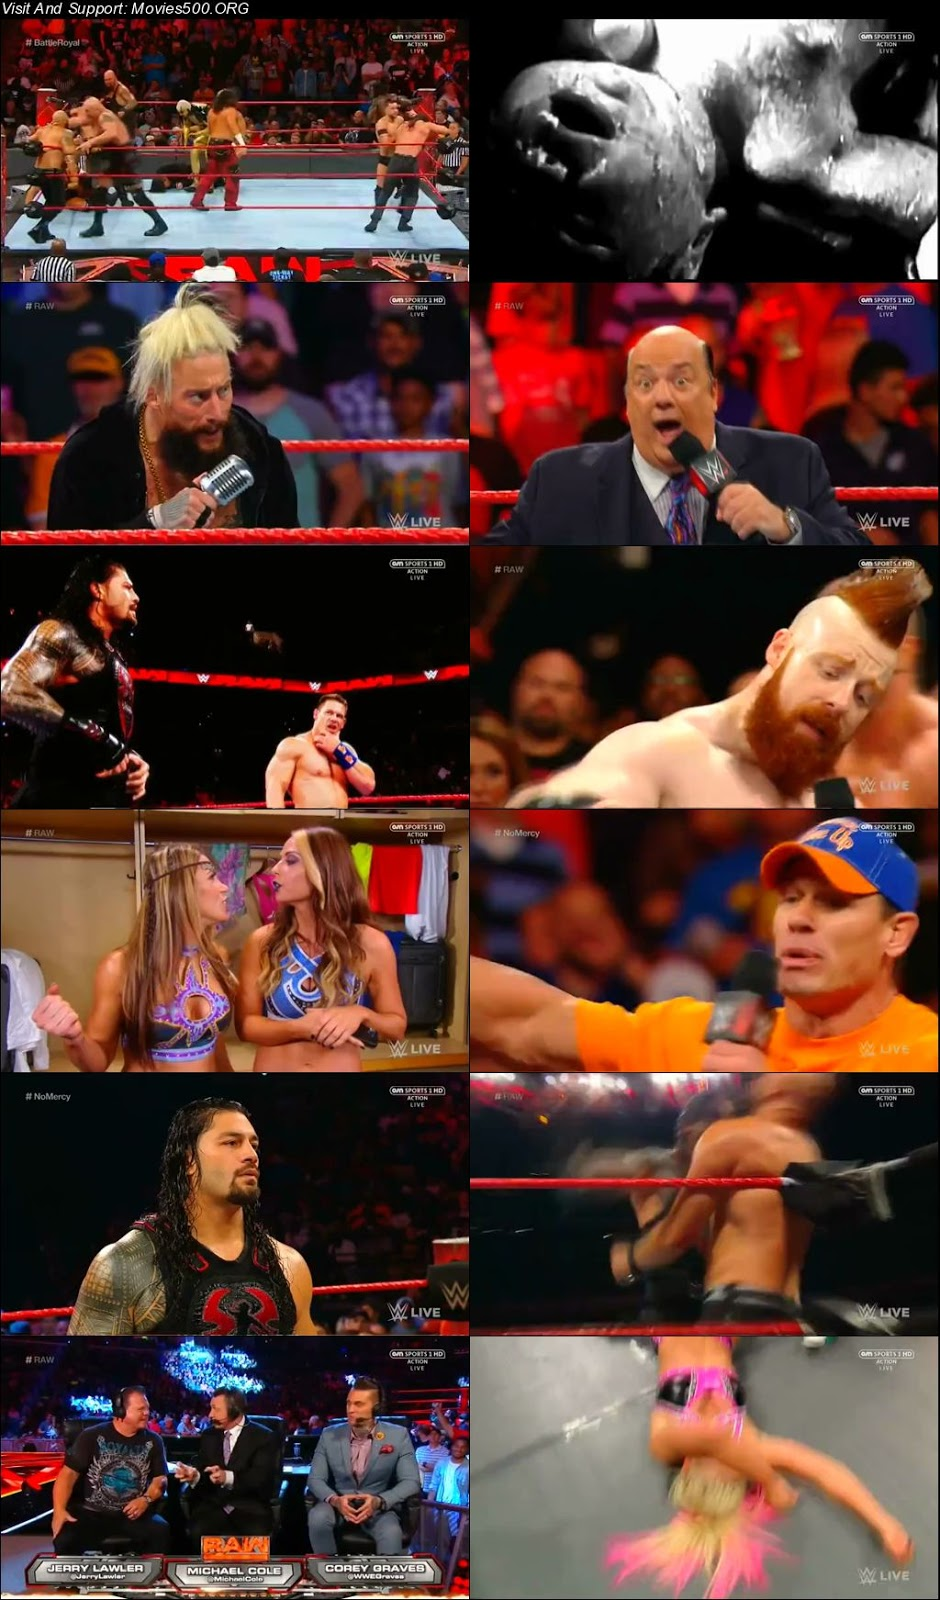 WWE Monday Night Raw 28 August 2017 Wrestling Show 720p at xcharge.net